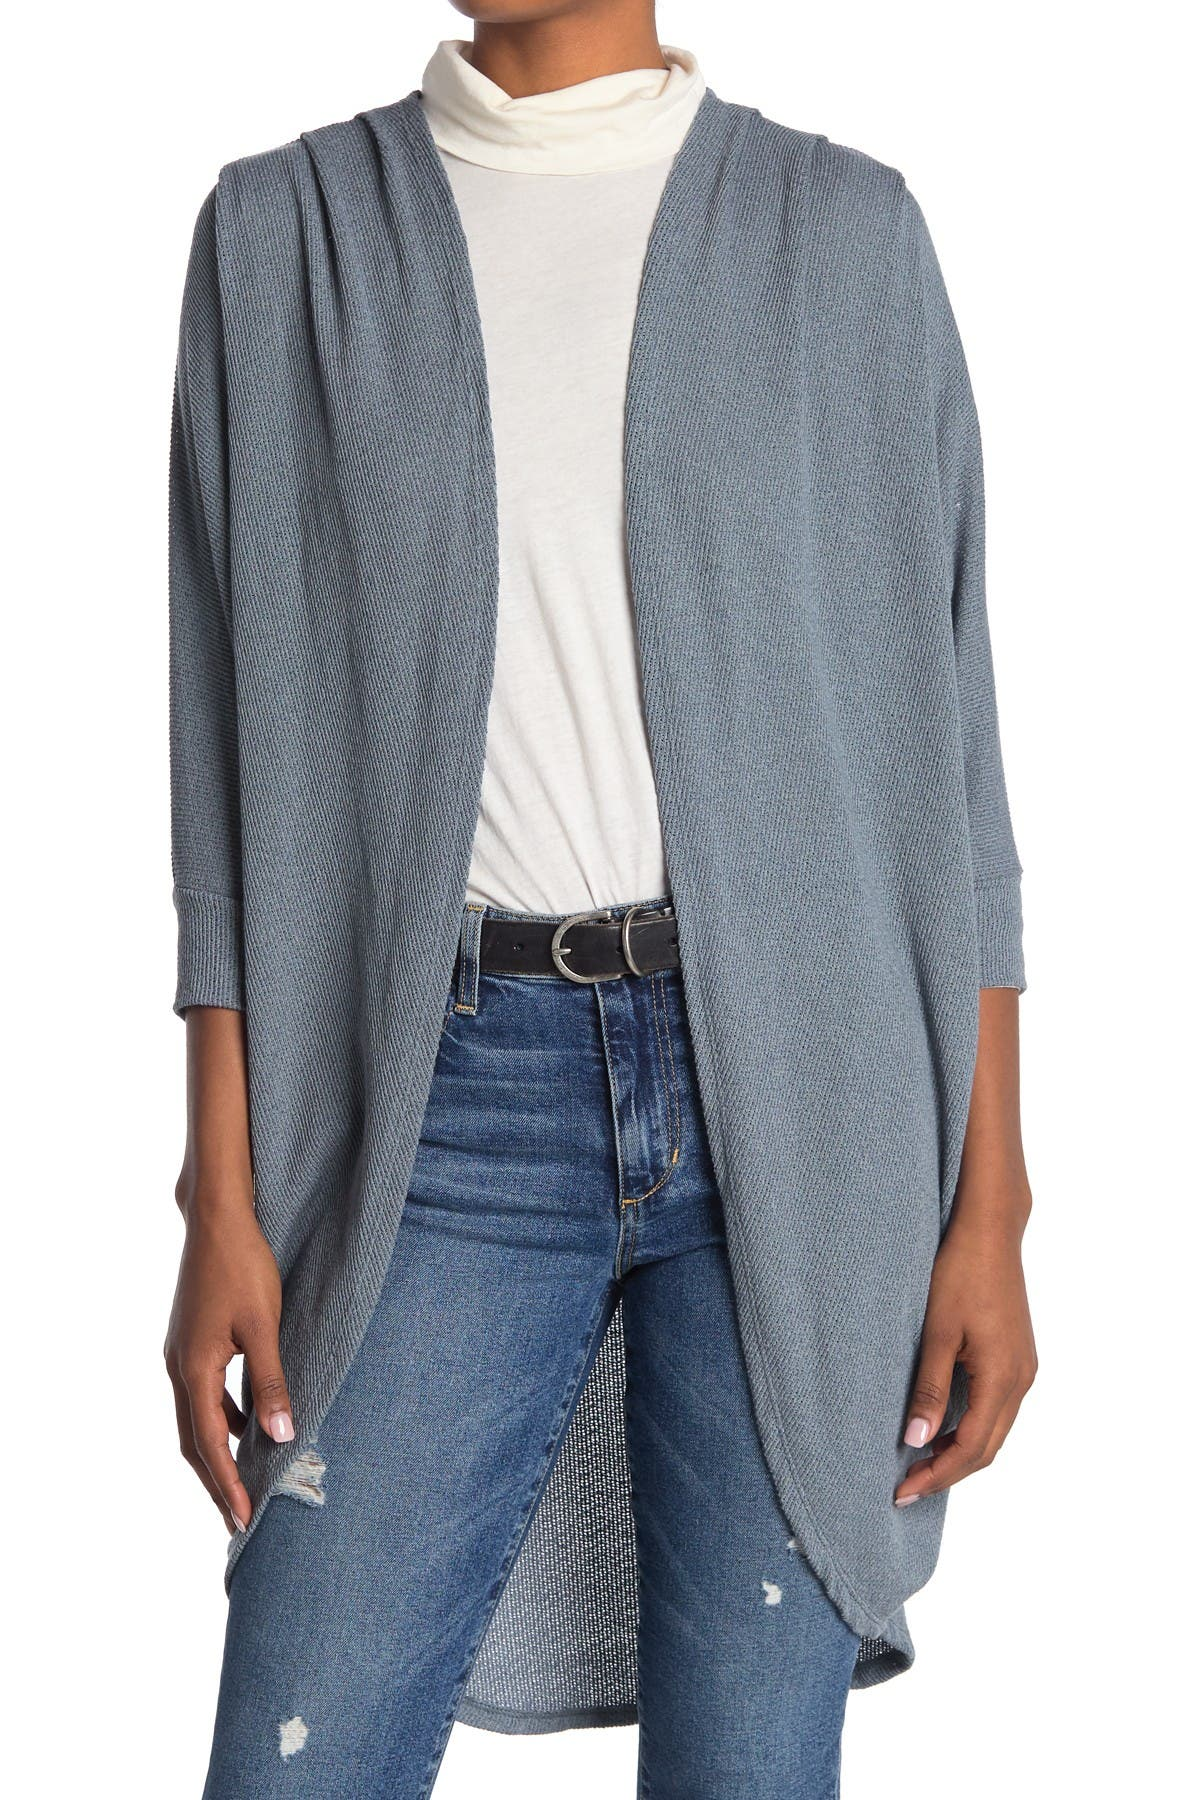 Image of 14th & Union Lightweight Cocoon Cardigan